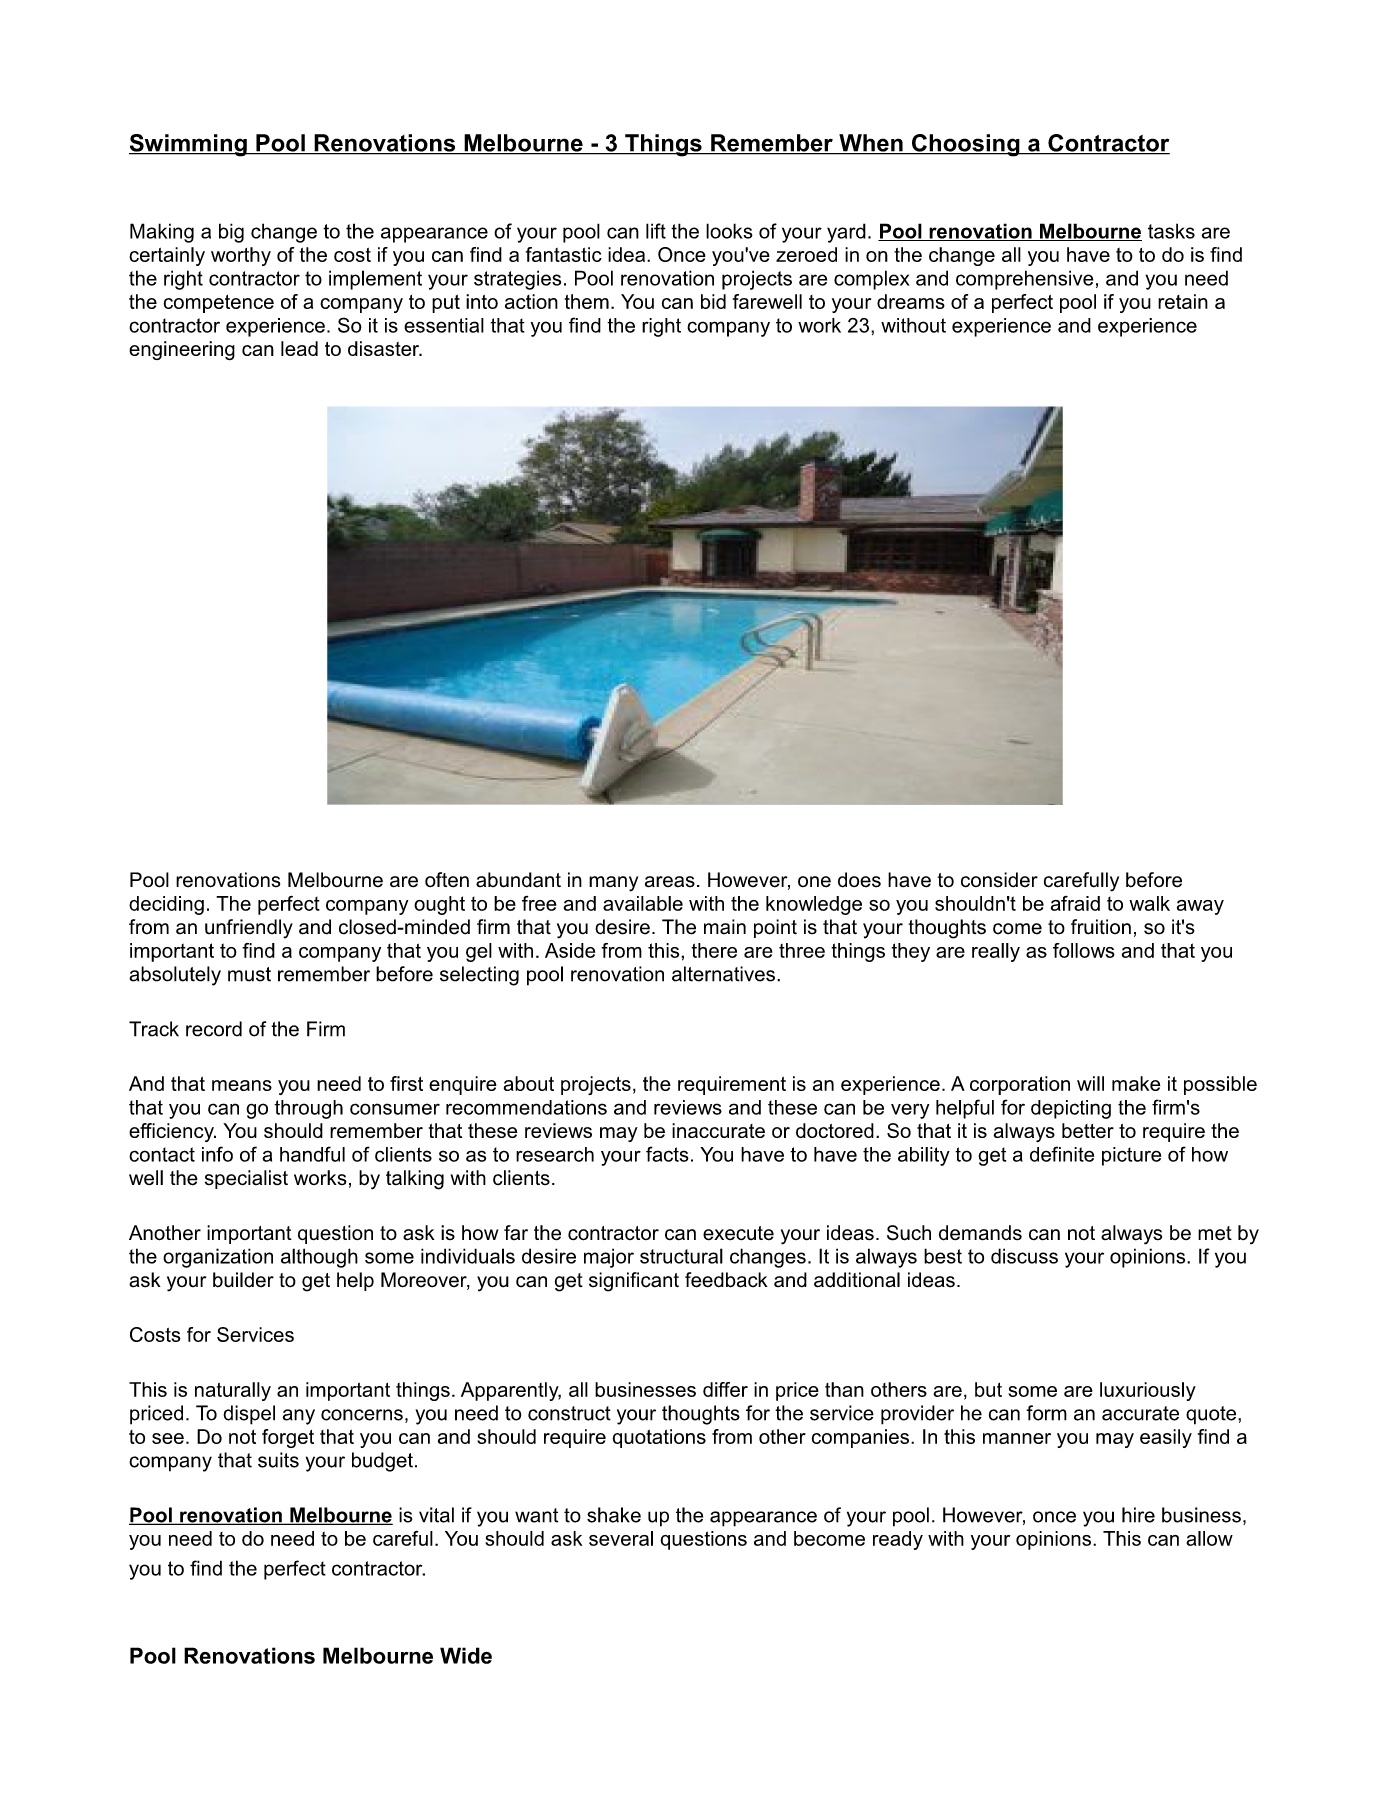 Pool Renovations Melbourne Wide Pages 1 - 2 - Text Version ...